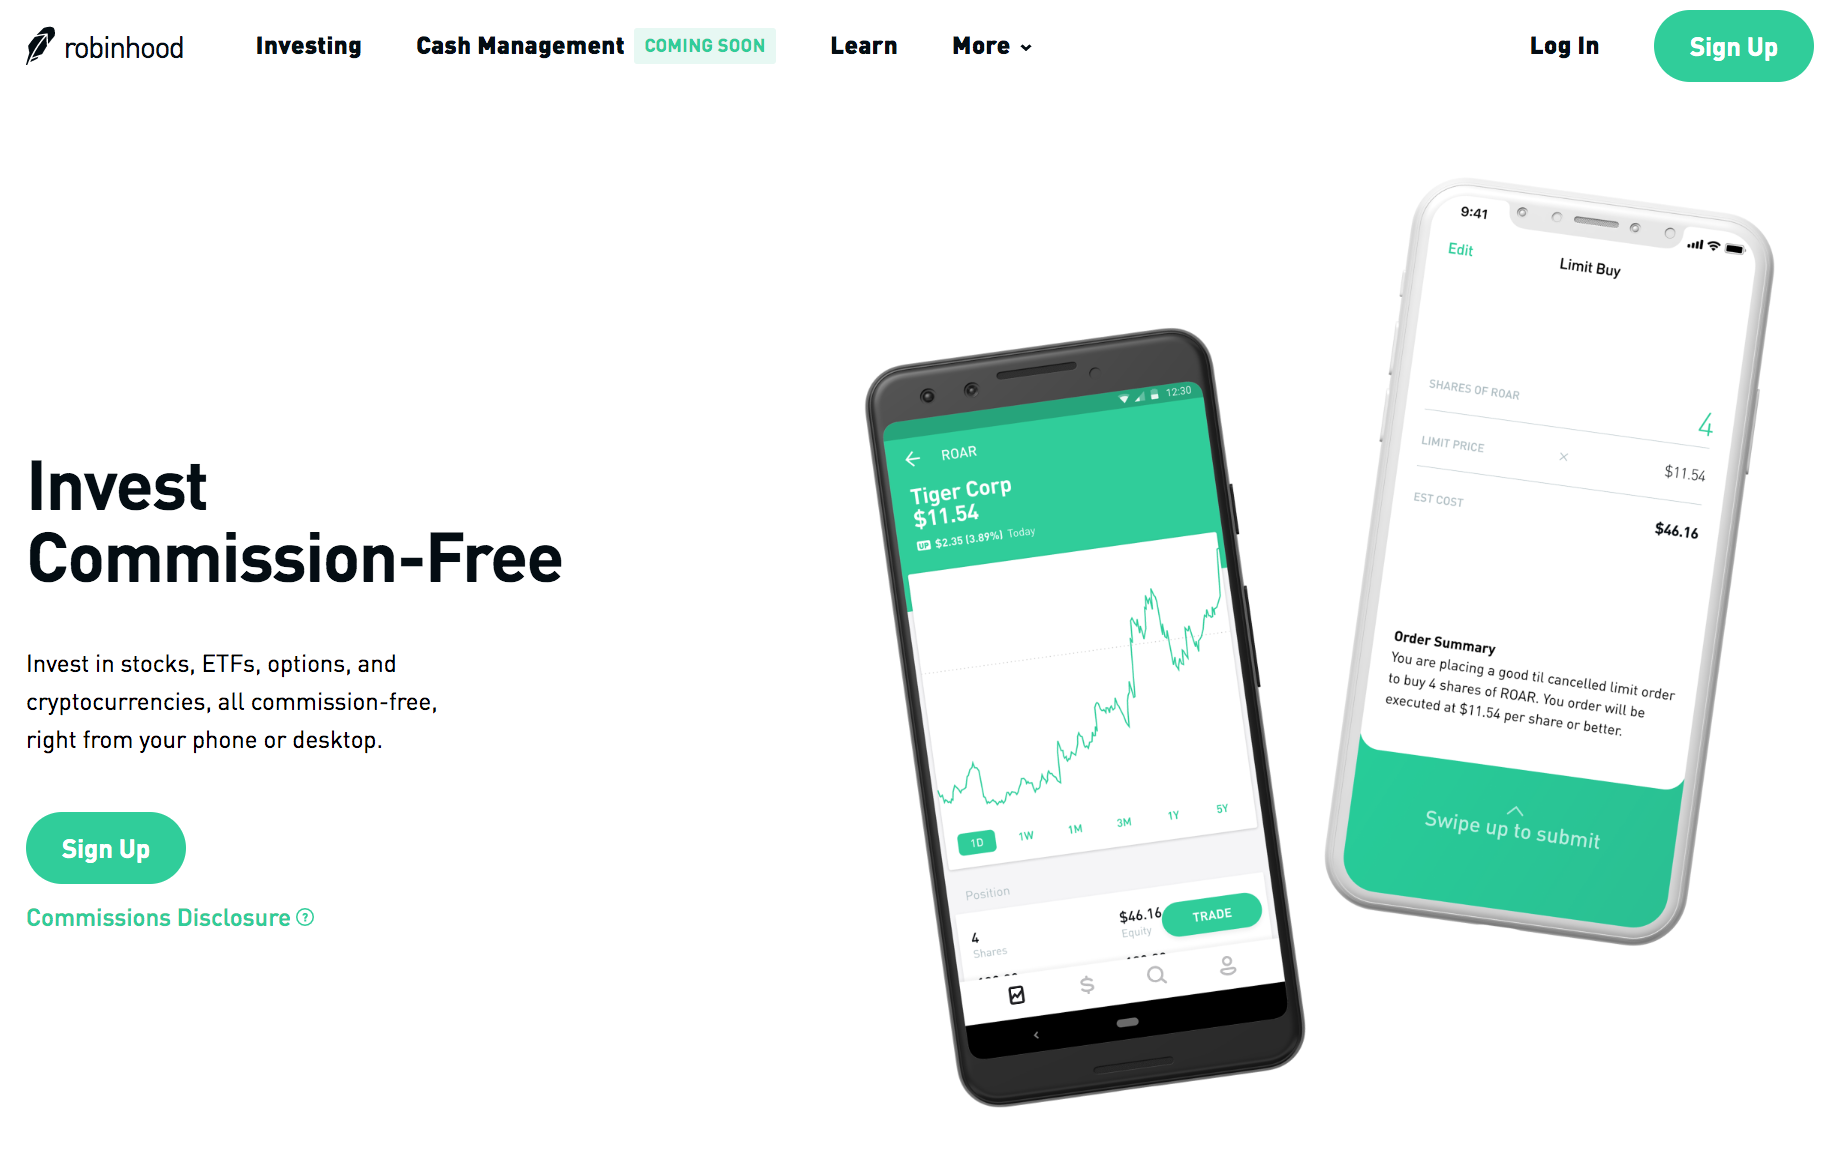 Robinhood website